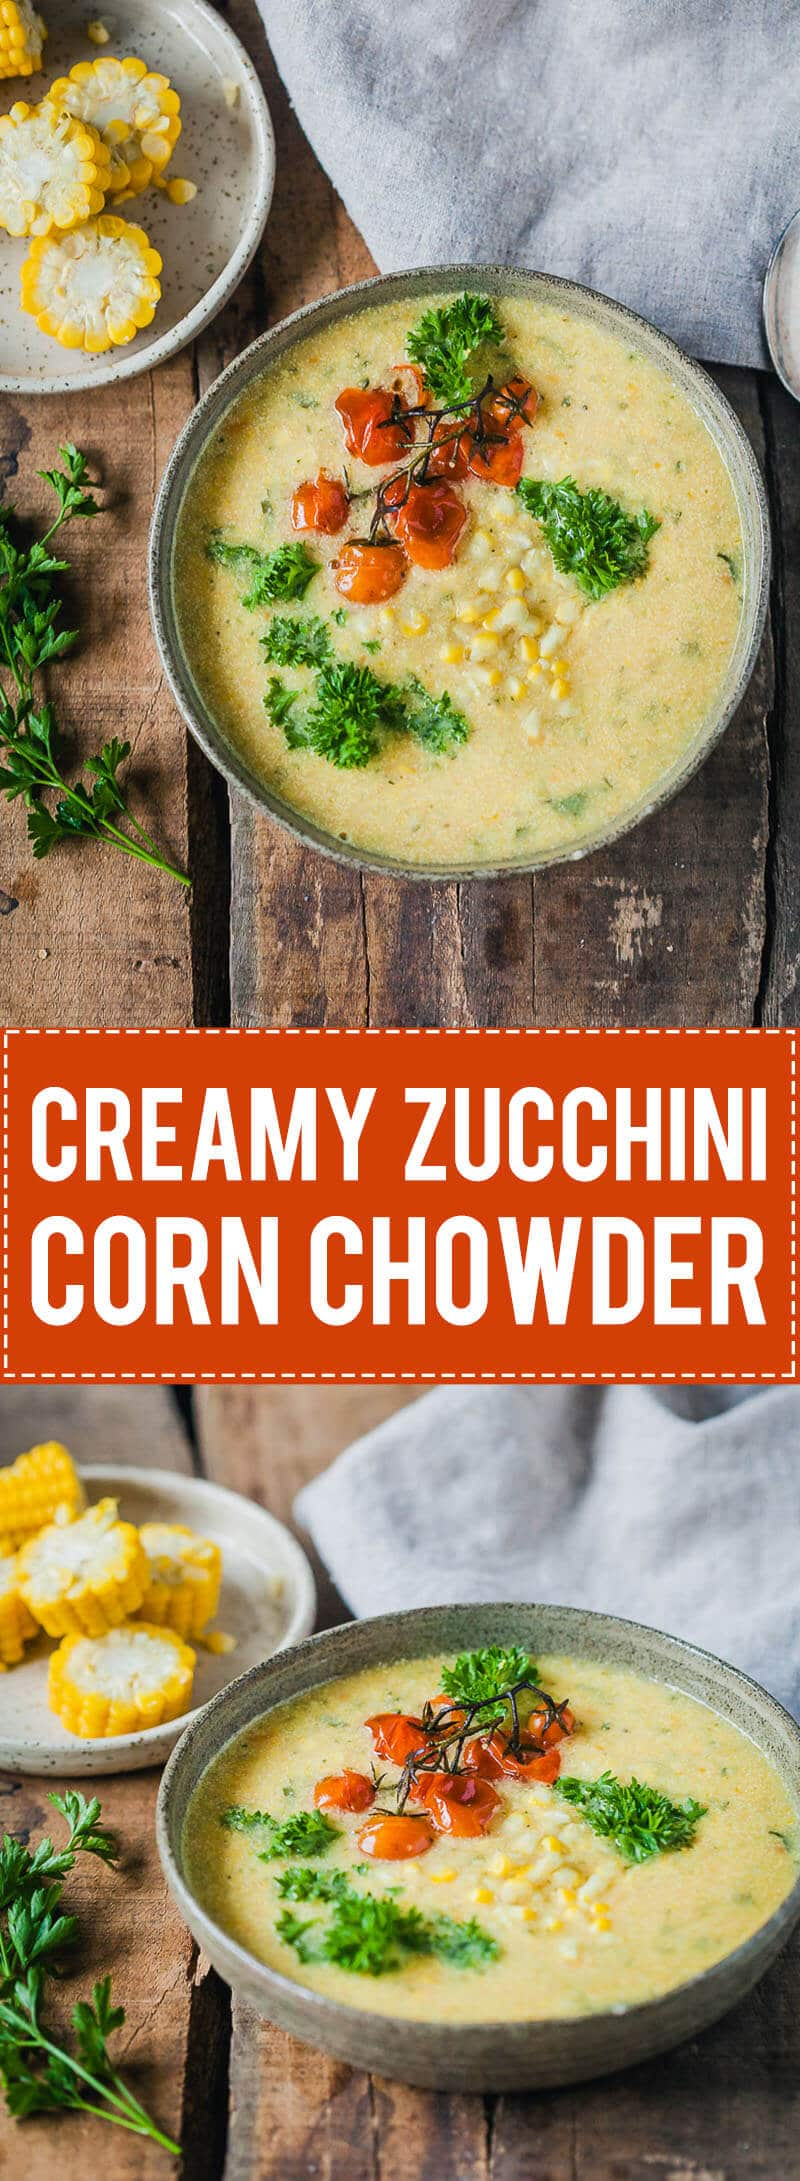 This Zucchini Corn Chowder is packed full of veggies, creamy and filling. And it's vegan and gluten-free! | Vibrant Plate